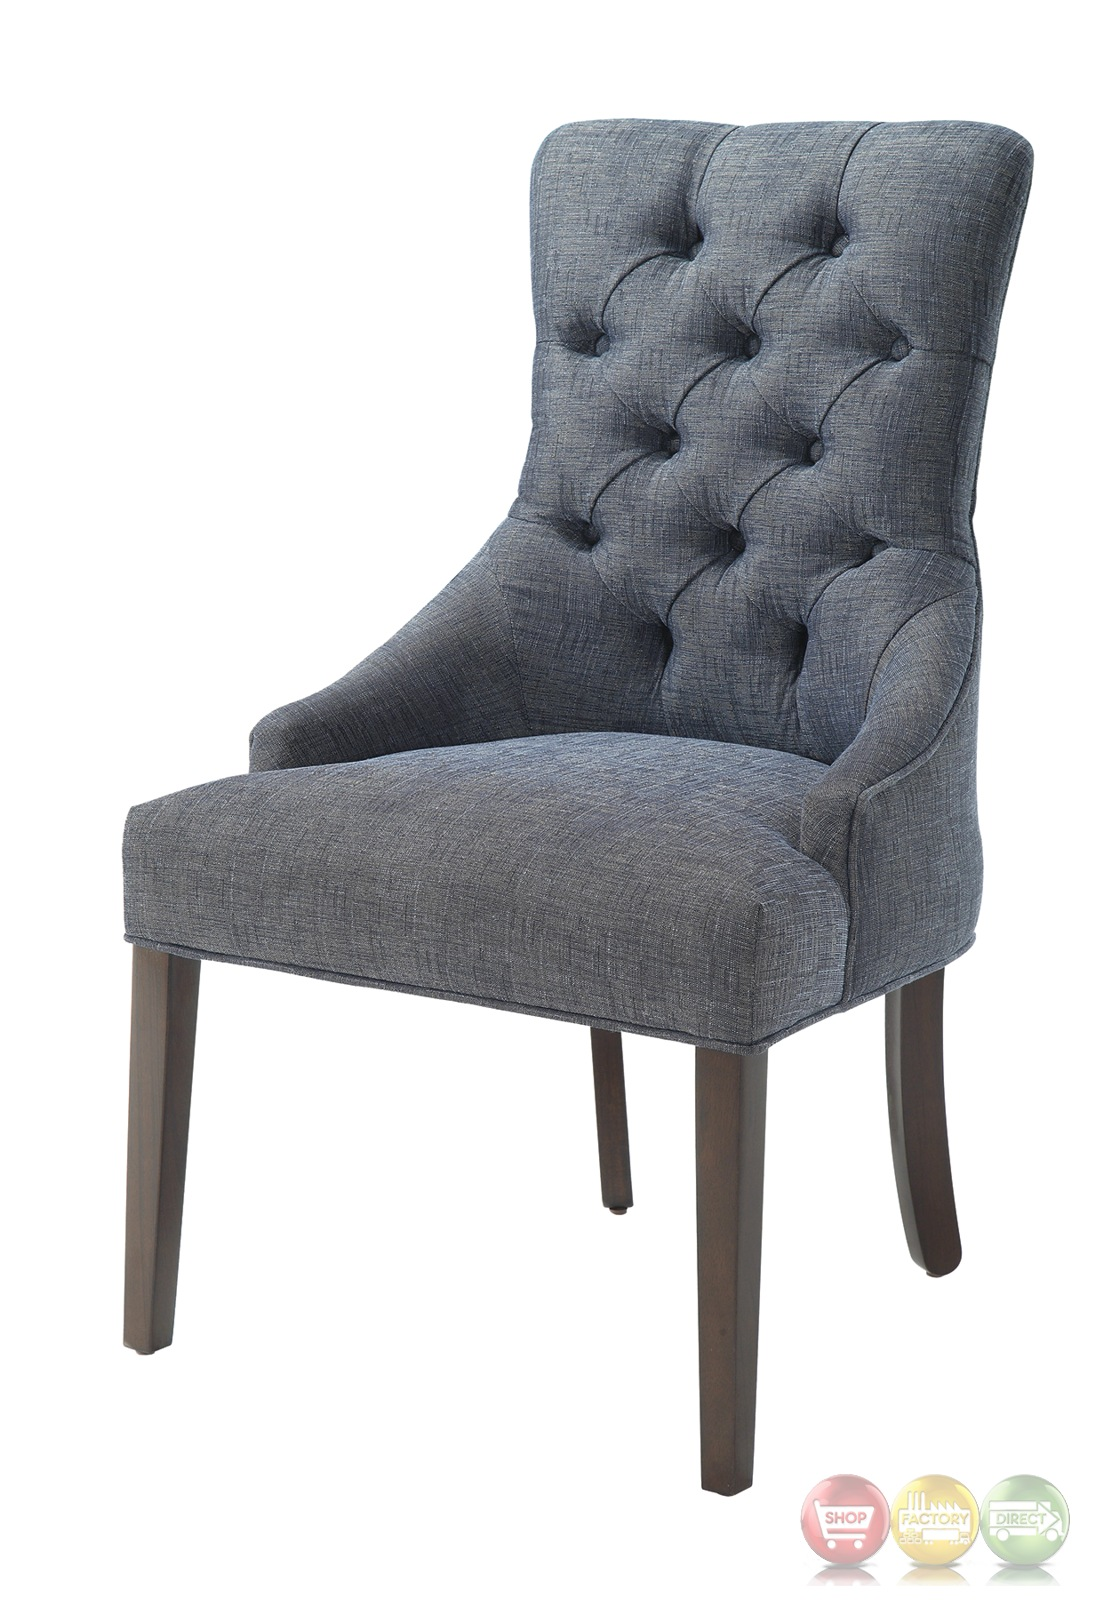 Caprice button tufted blue grey linen accent chair Tufted accent chair